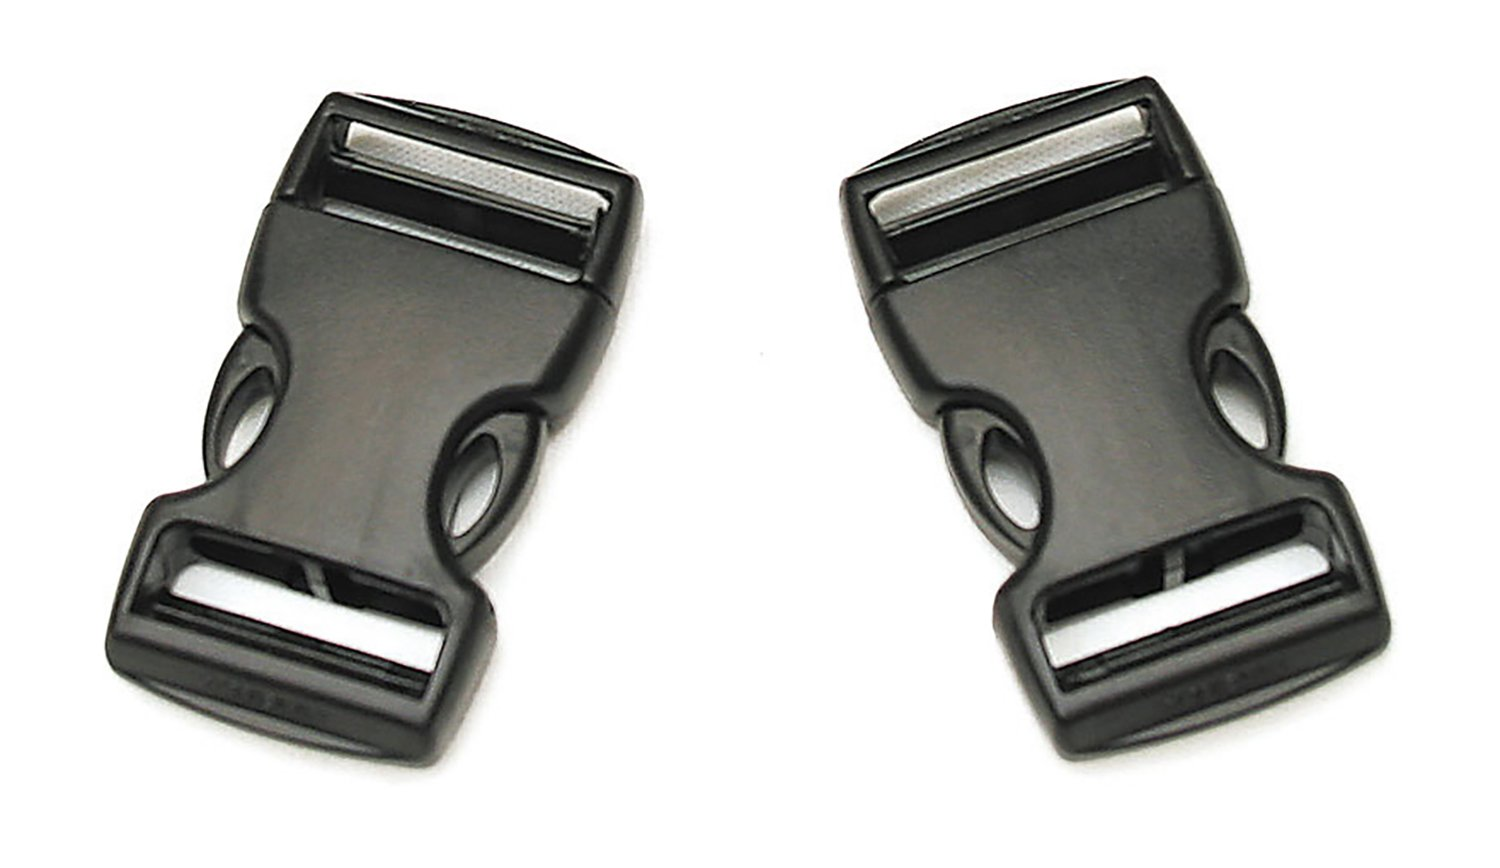 Cargobuckle F05617 Snap-Lock Buckles for Make-A-Strap Kit (25-Pack)